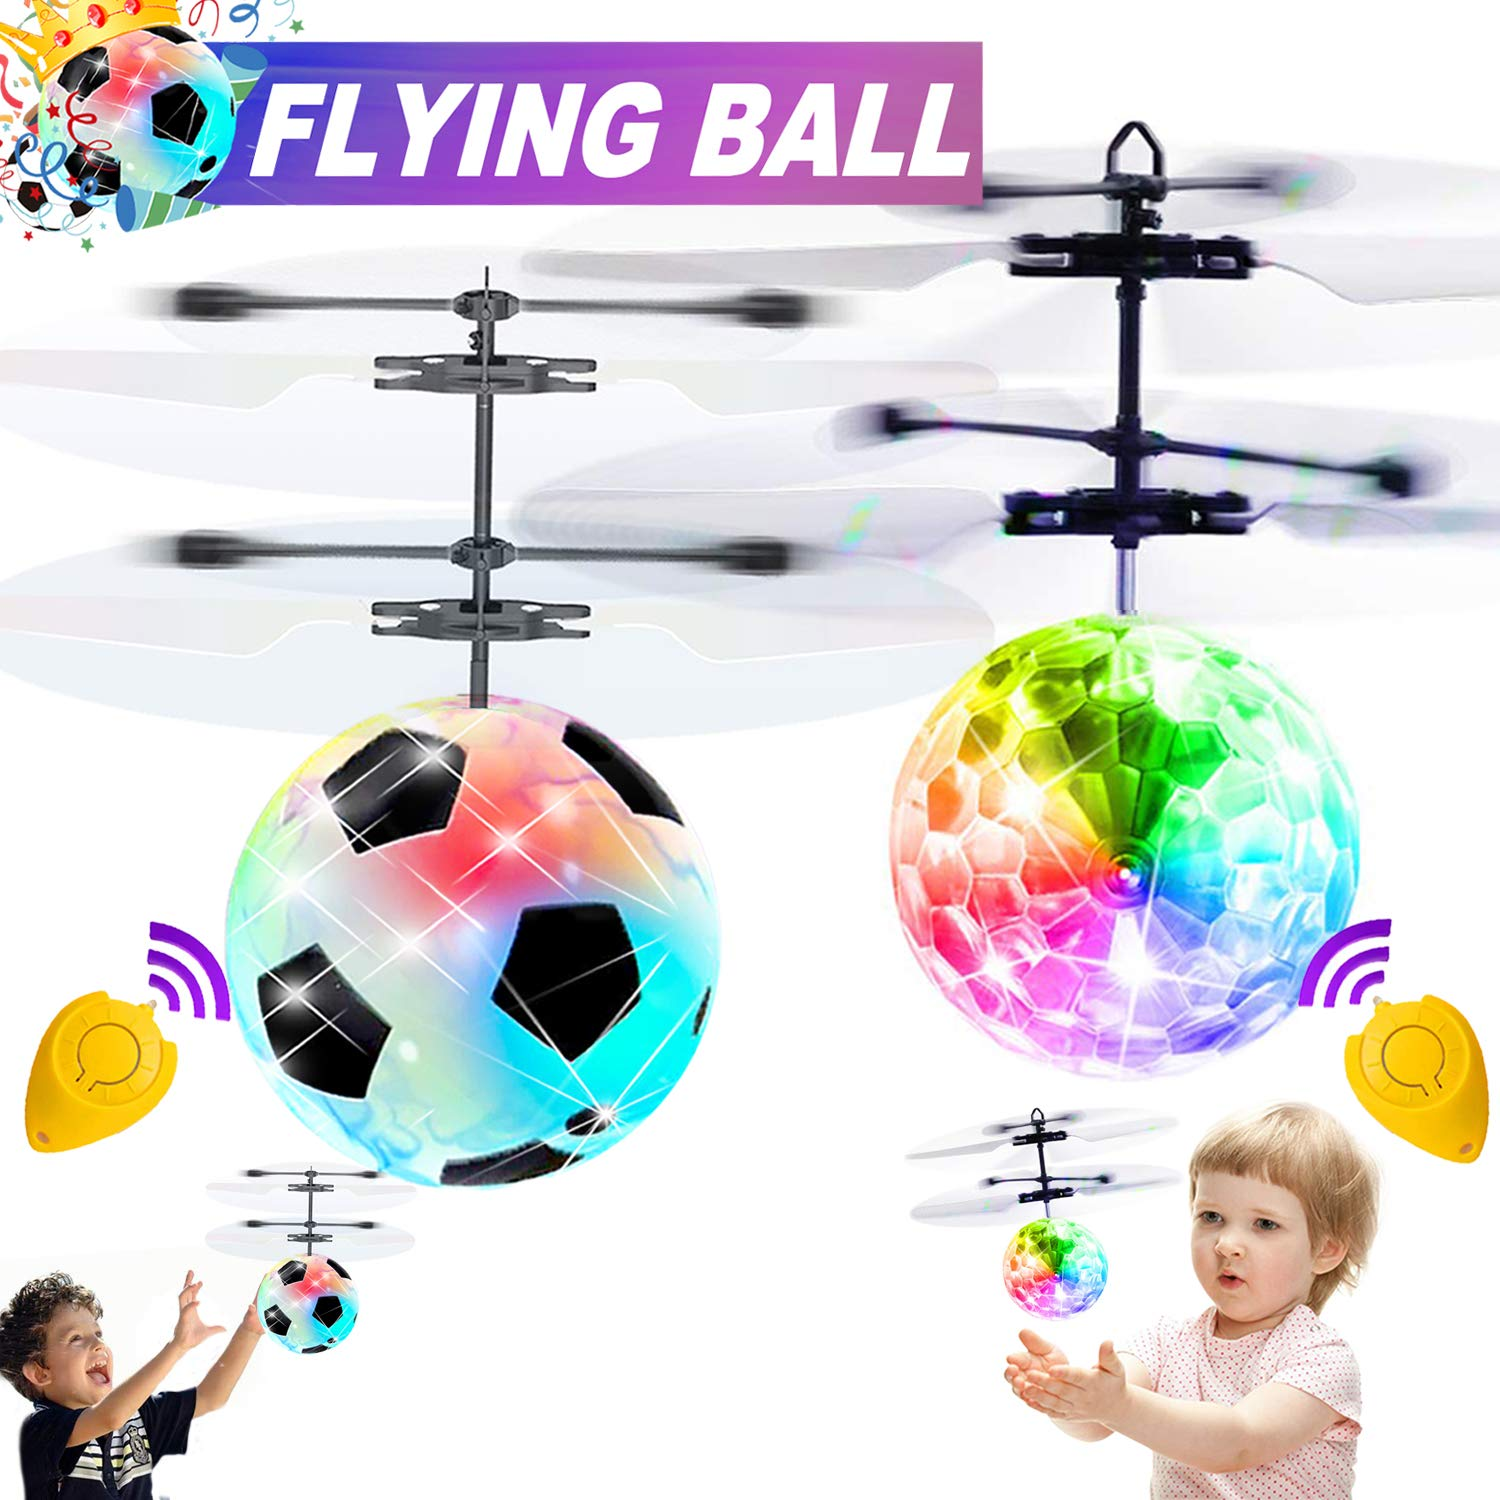 2 Pack Flying Ball Kid Toys for Boy 5 6 Years Old Gift, Mini Drone Light Up Toy for Kid Christmas Gift, Soccer Toys Remote Control Helicopter Indoor Outdoor Toys for 5 6 7 8 9 10 11 Year Old Kids by Camlinbo